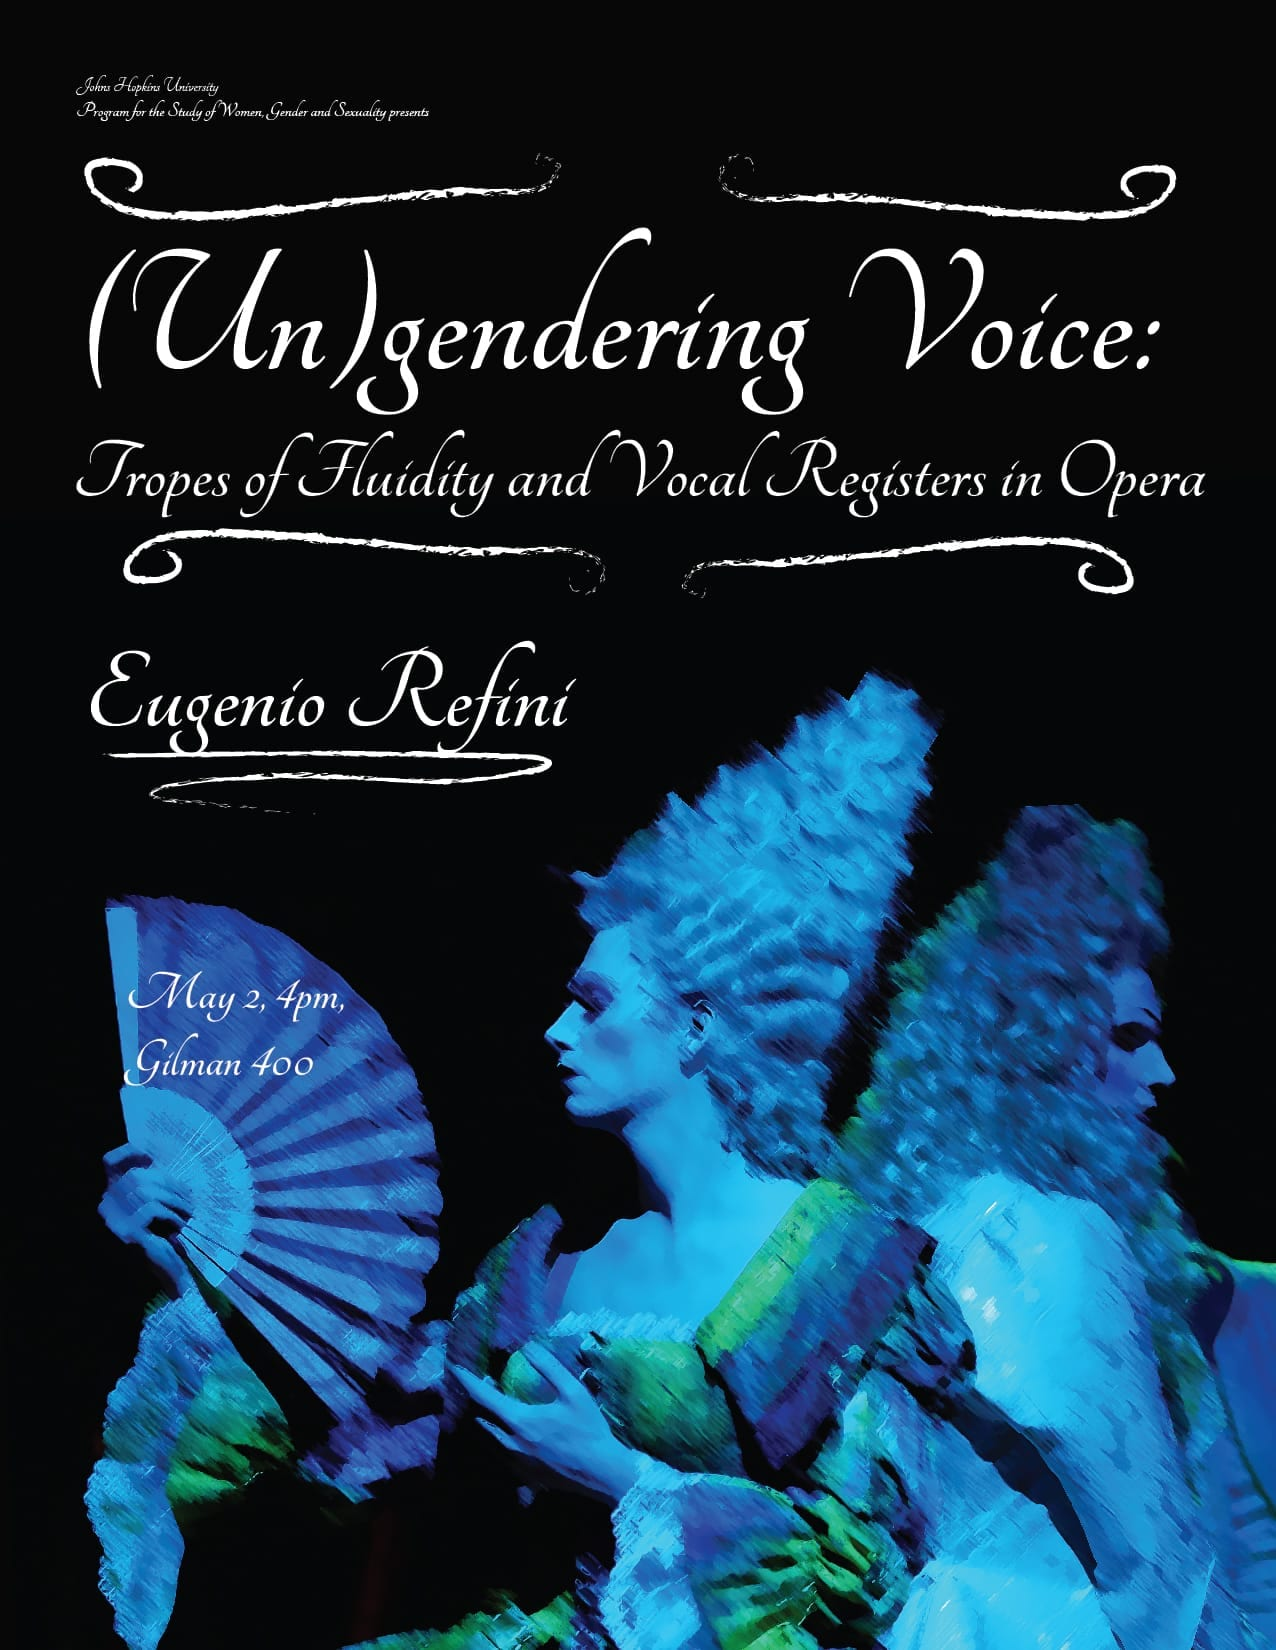 (Un)Gendering Voice: Tropes of Fluidity and Vocal Registers in Opera